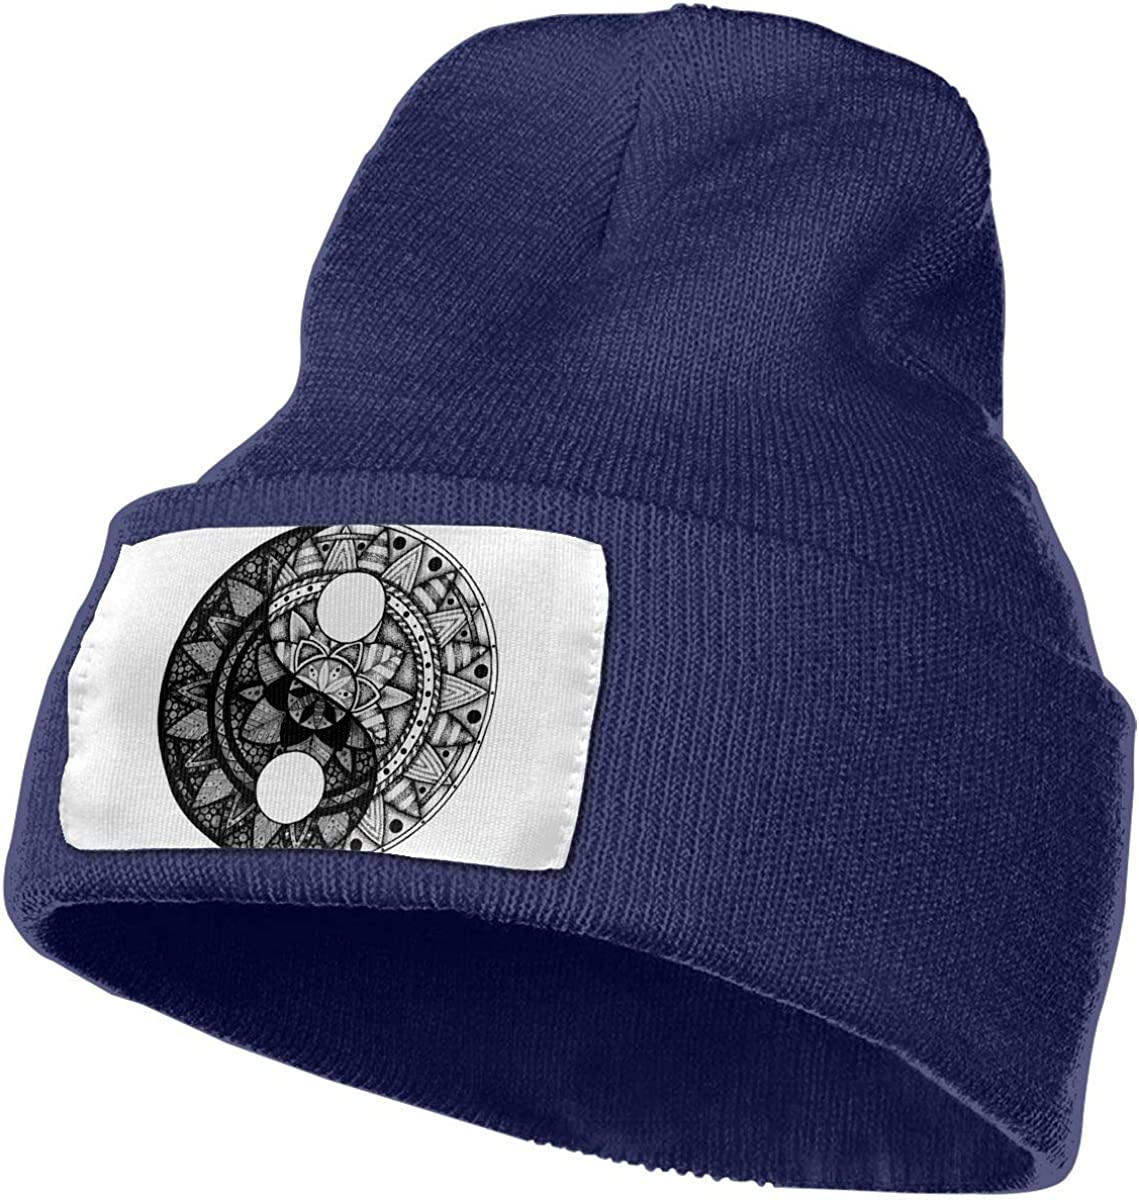 Yin and Yang Art Unisex Fashion Knitted Hat Luxury Hip-Hop Cap